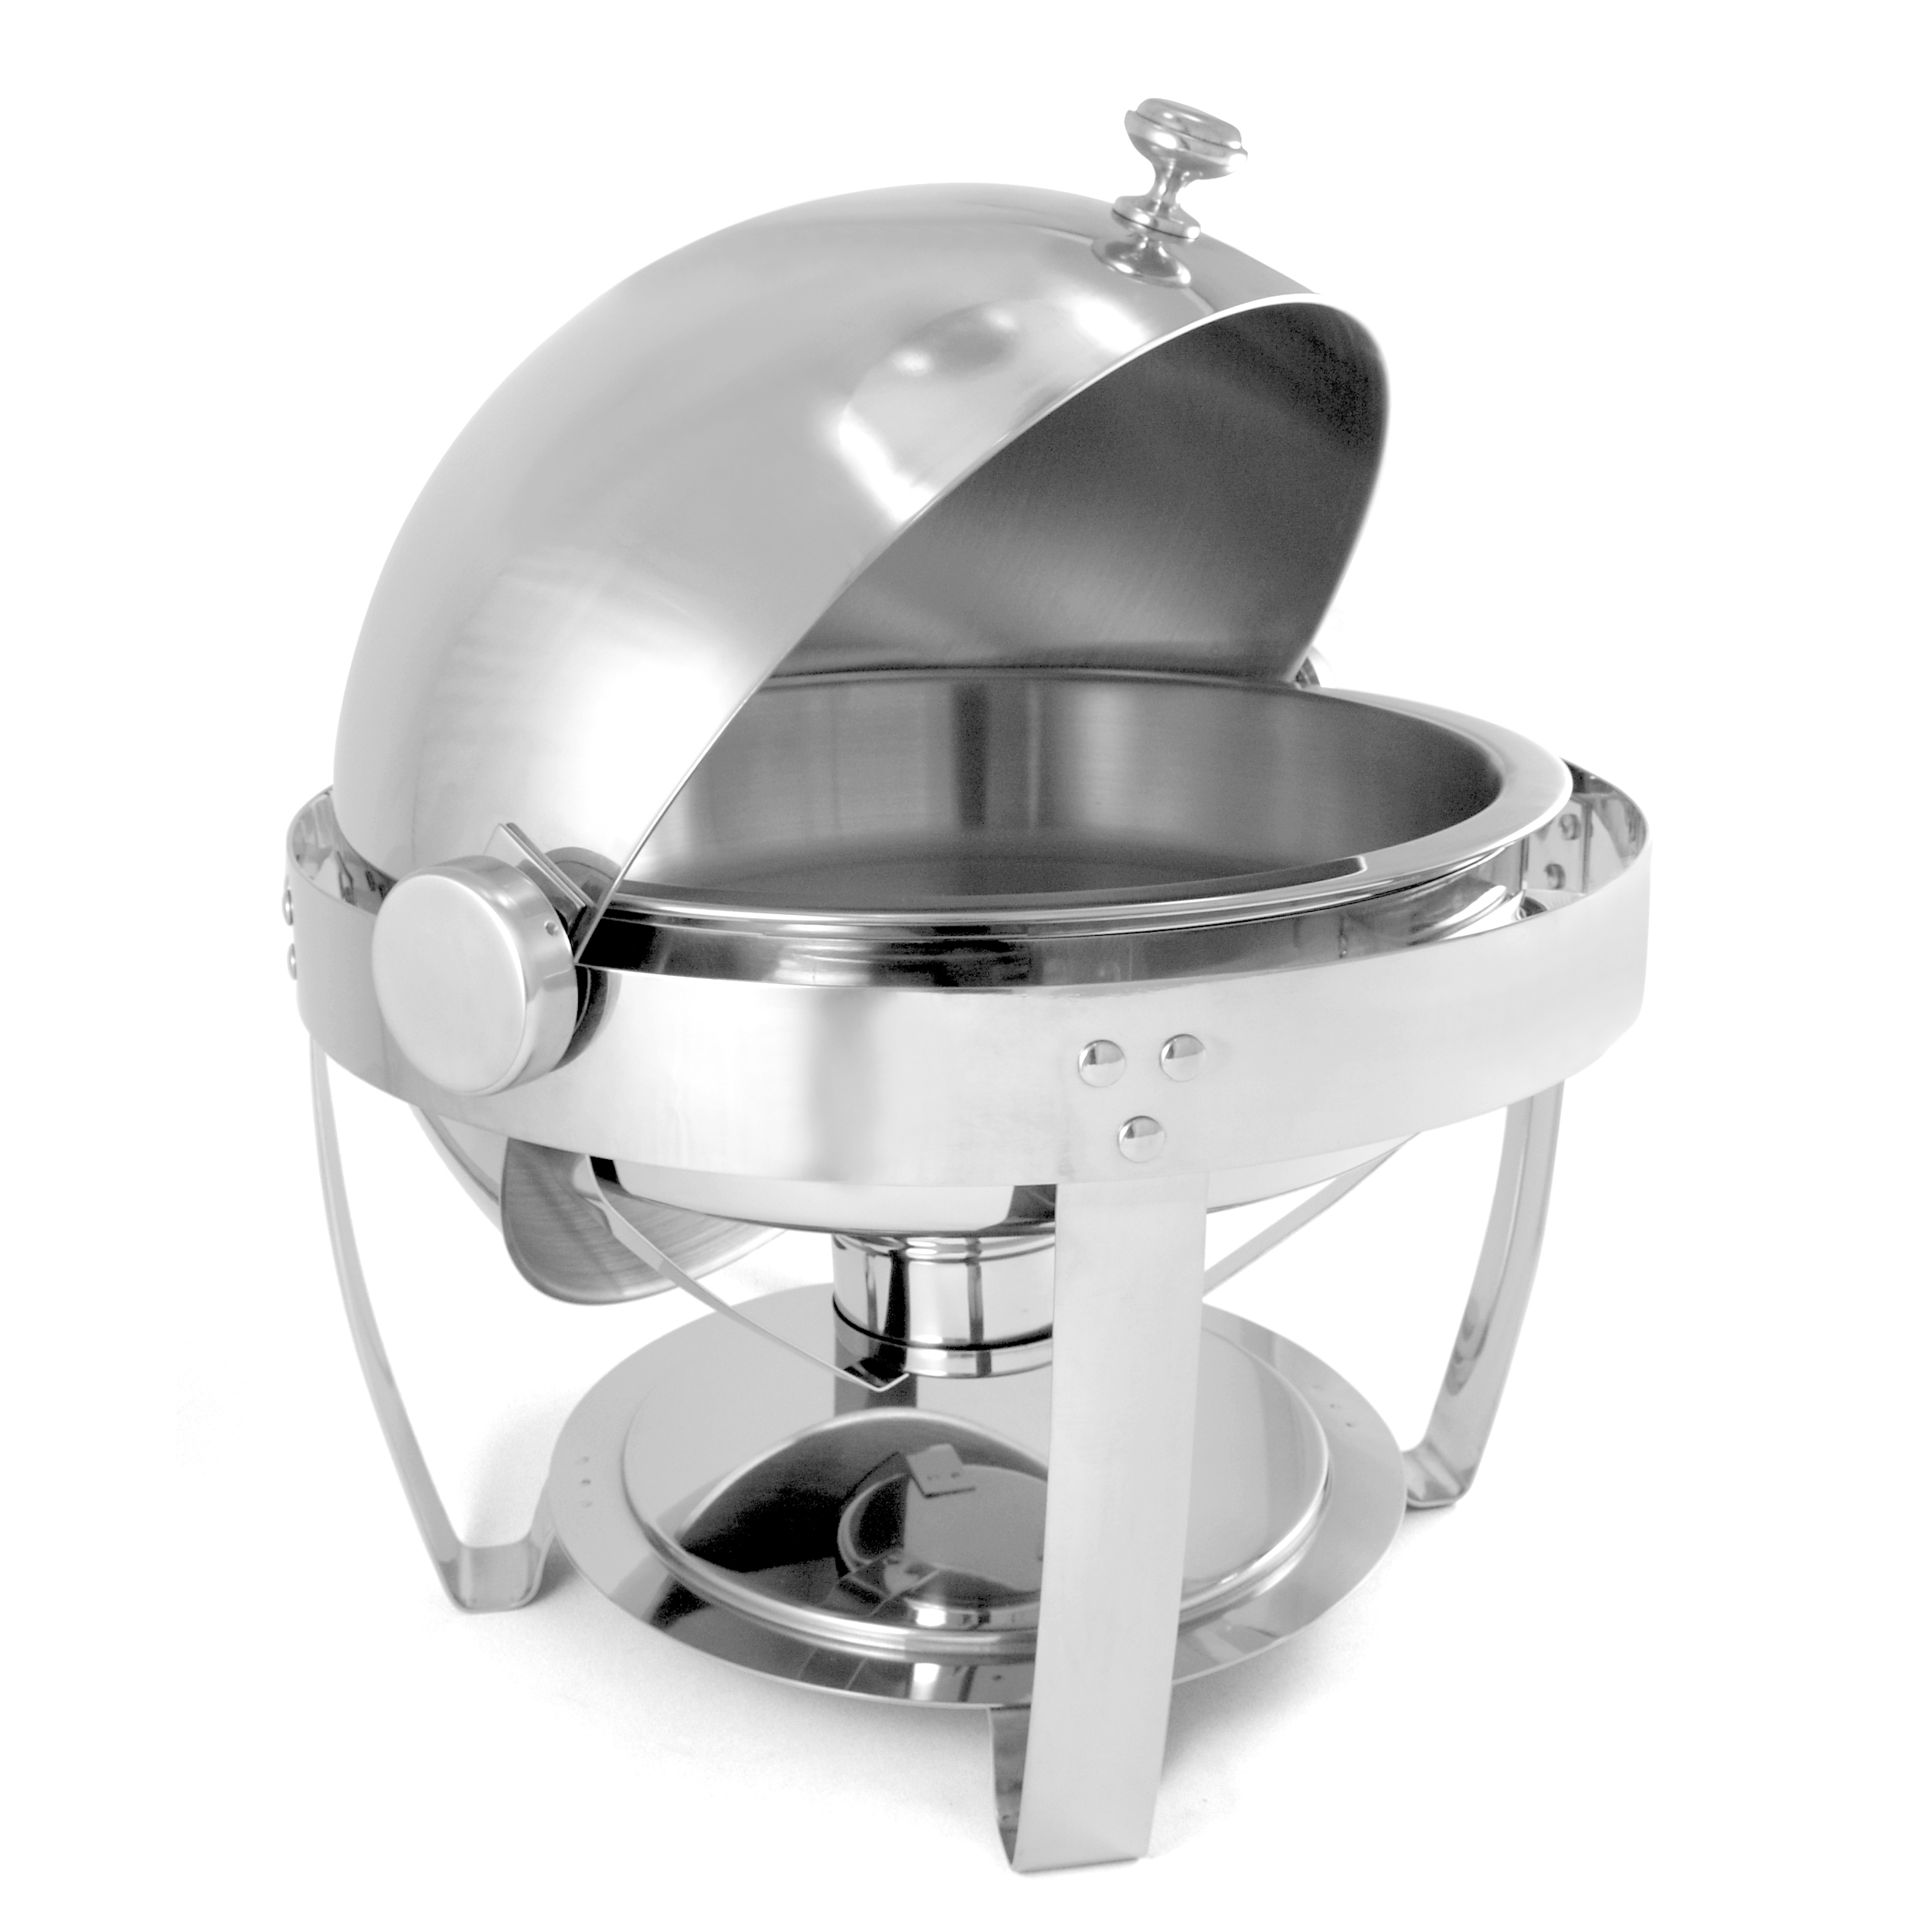 Stainless Steel Round 6 Quart Chafing Dish - Minor Scratch N' Dent